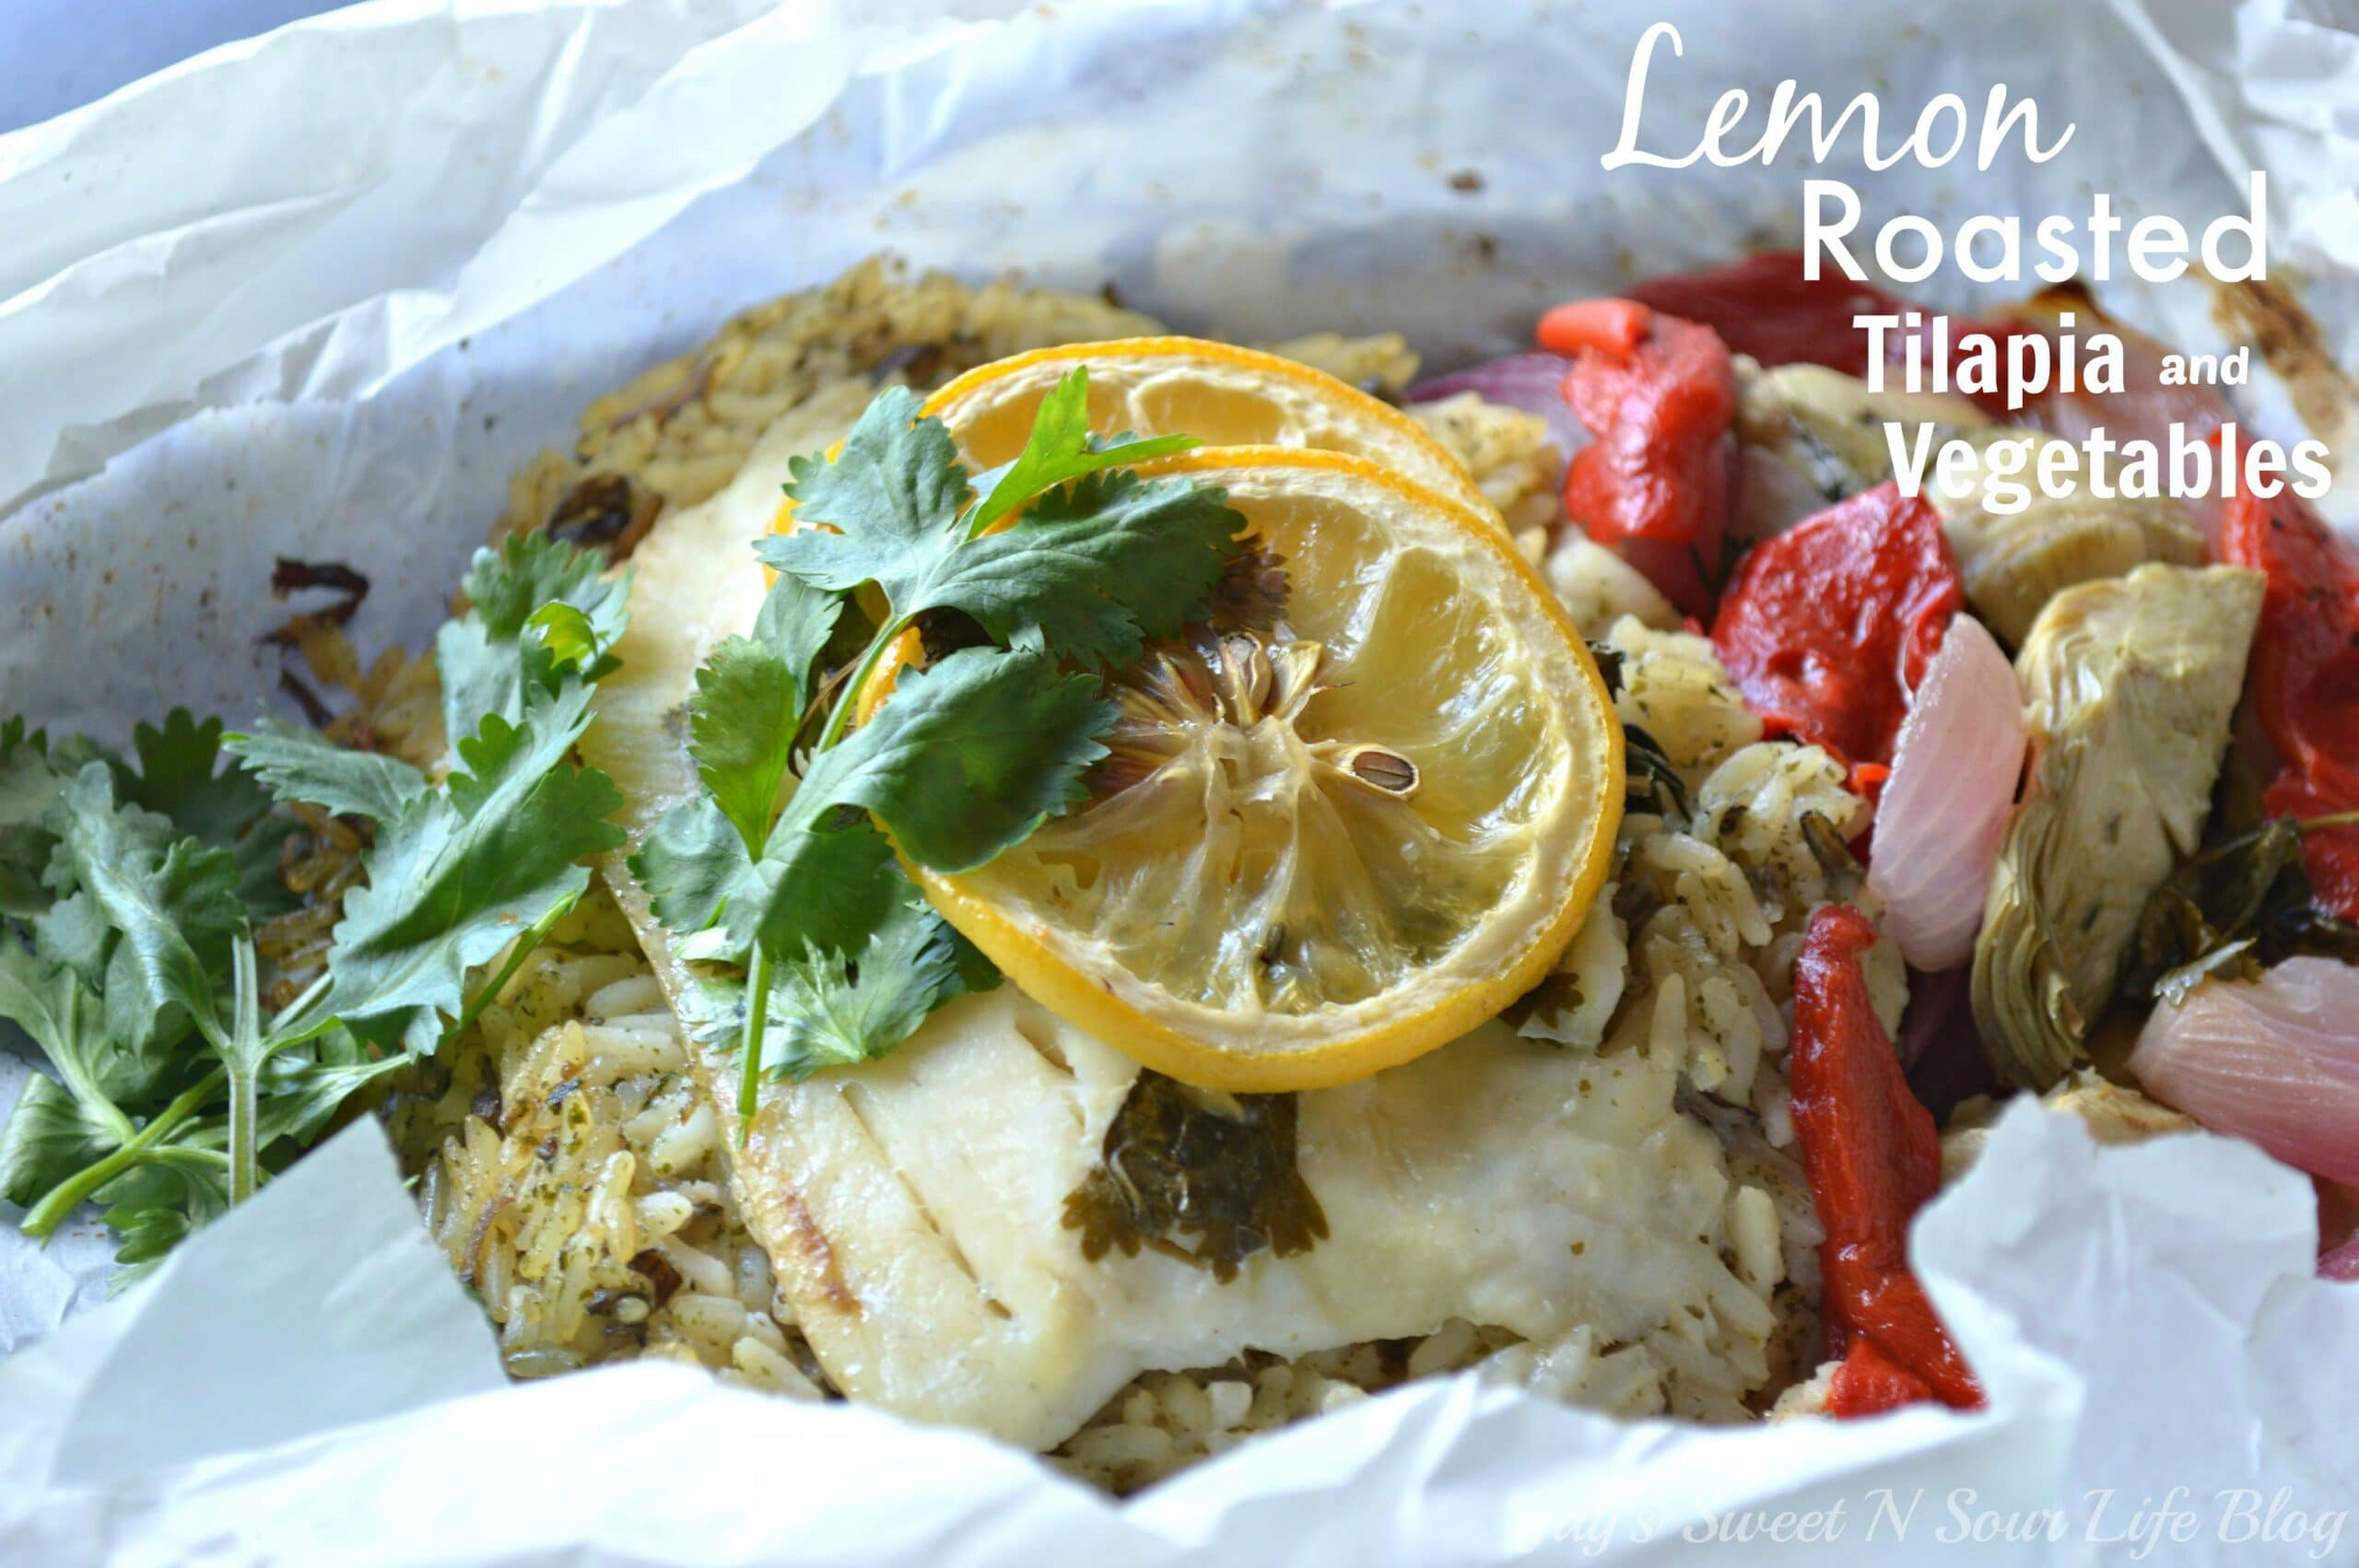 Lemon Roasted Tilapia and Vegetables Recipe. Dinner for two has never been so easy and delicious. This Fresh Lemon Roasted Tilapia and Vegetables are full of fresh flavor and spices.